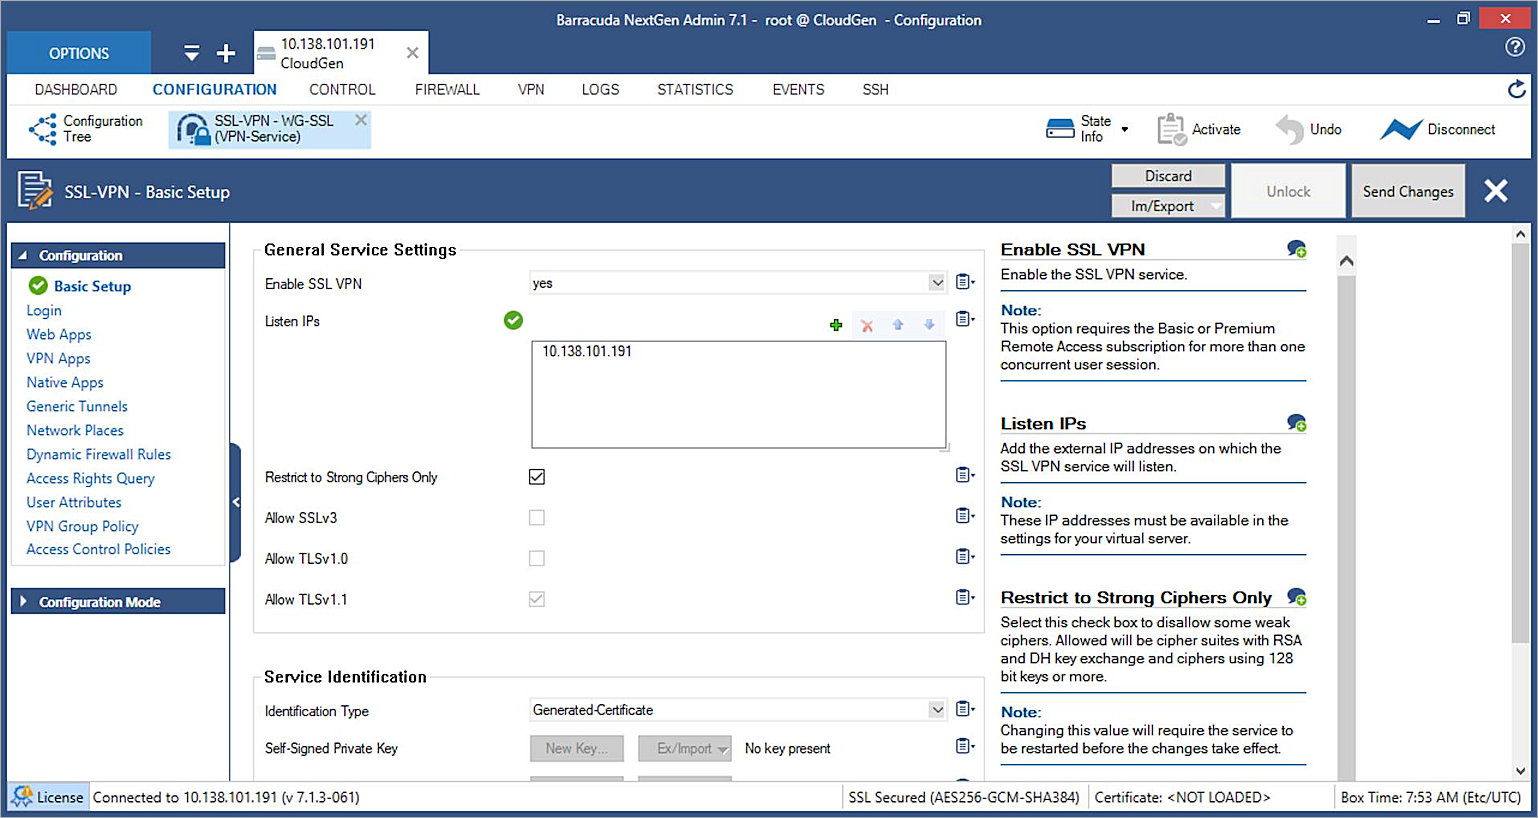 Barracuda CloudGen Firewall Integration with AuthPoint